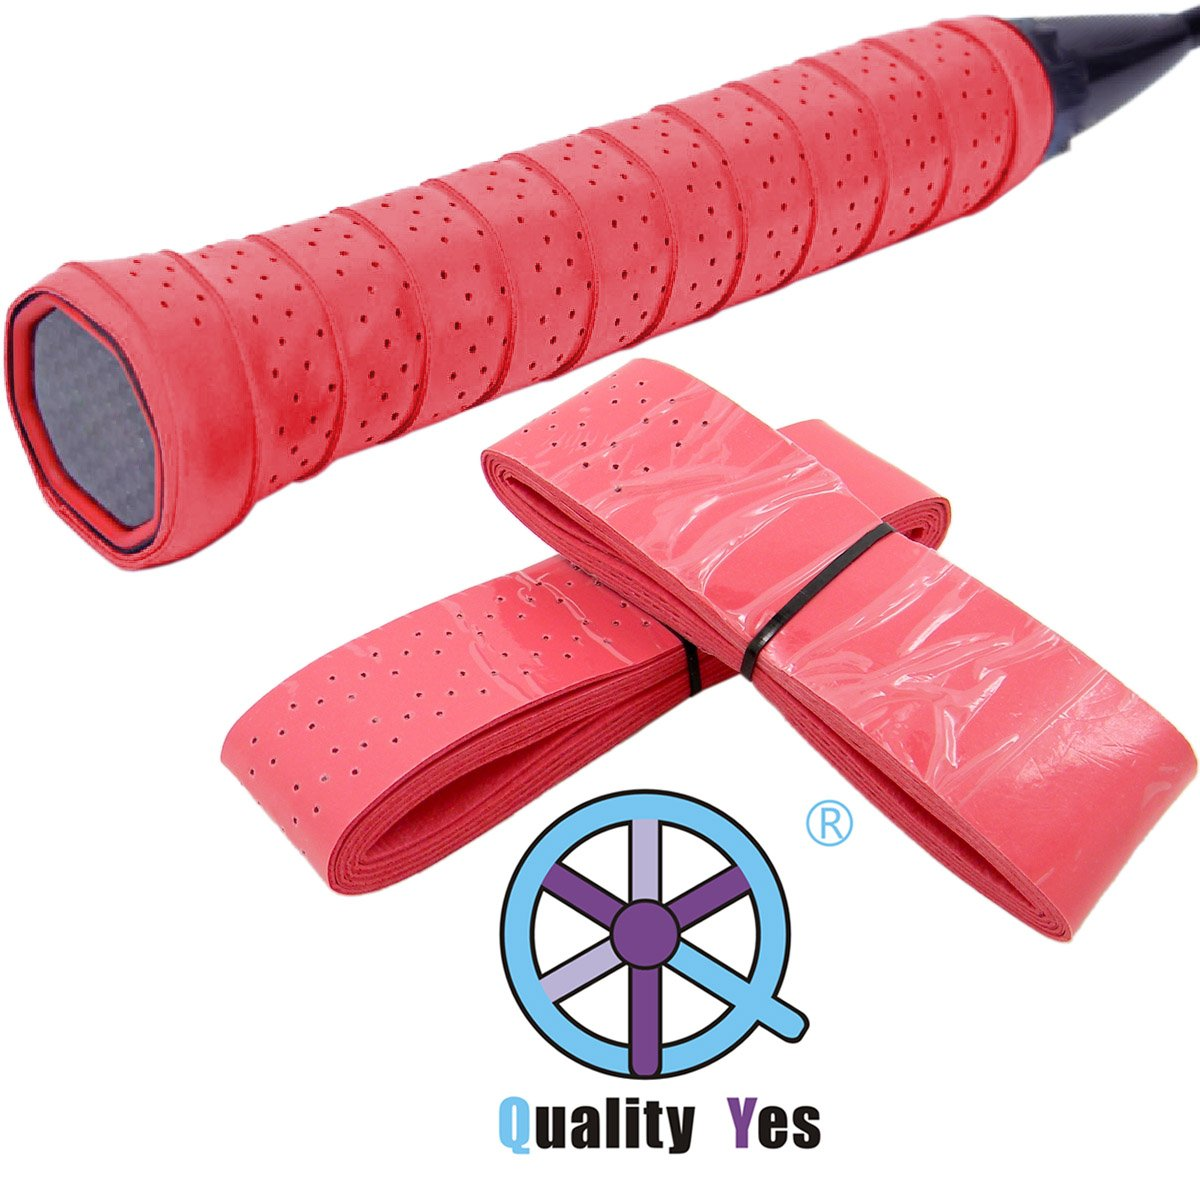 Quality Yes QY 2PCS Widened Perforated Super Absorbent Tennis Racket Overgrip Anti Slip Badminton Racket Tape Wrap Table Tennis Racket Tape, Red Color